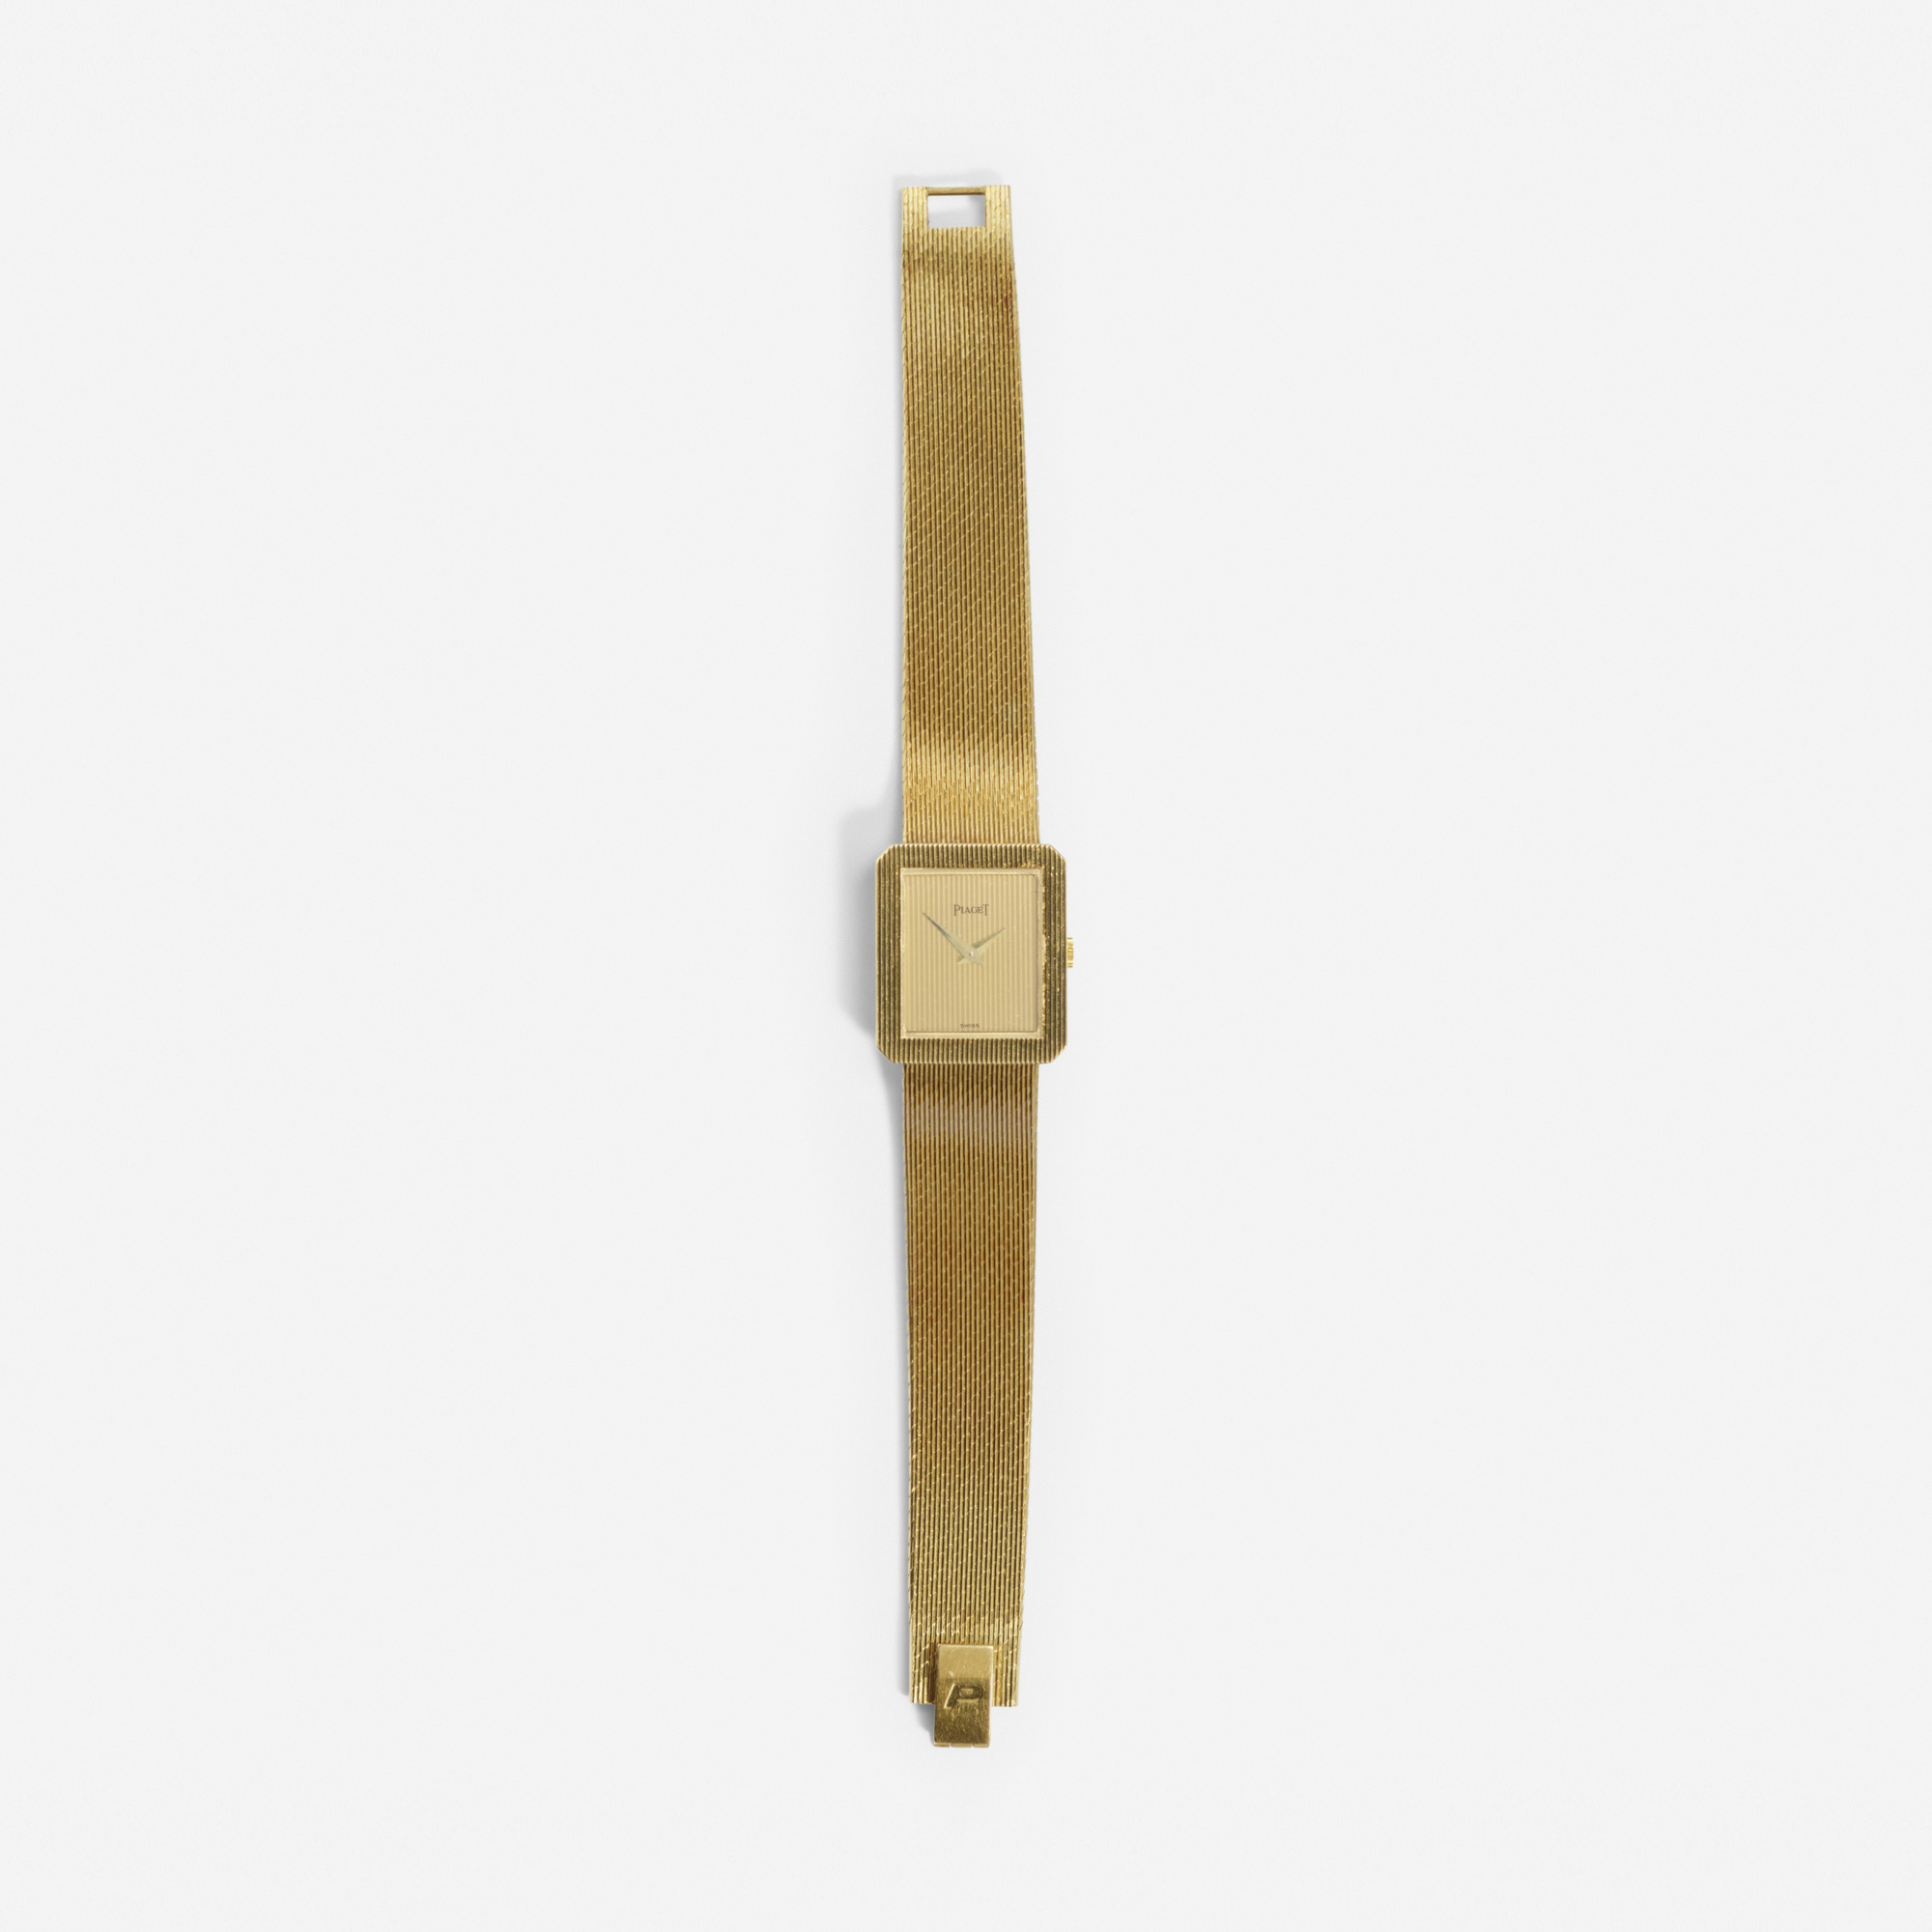 256: Piaget / A gold watch (1 of 1)